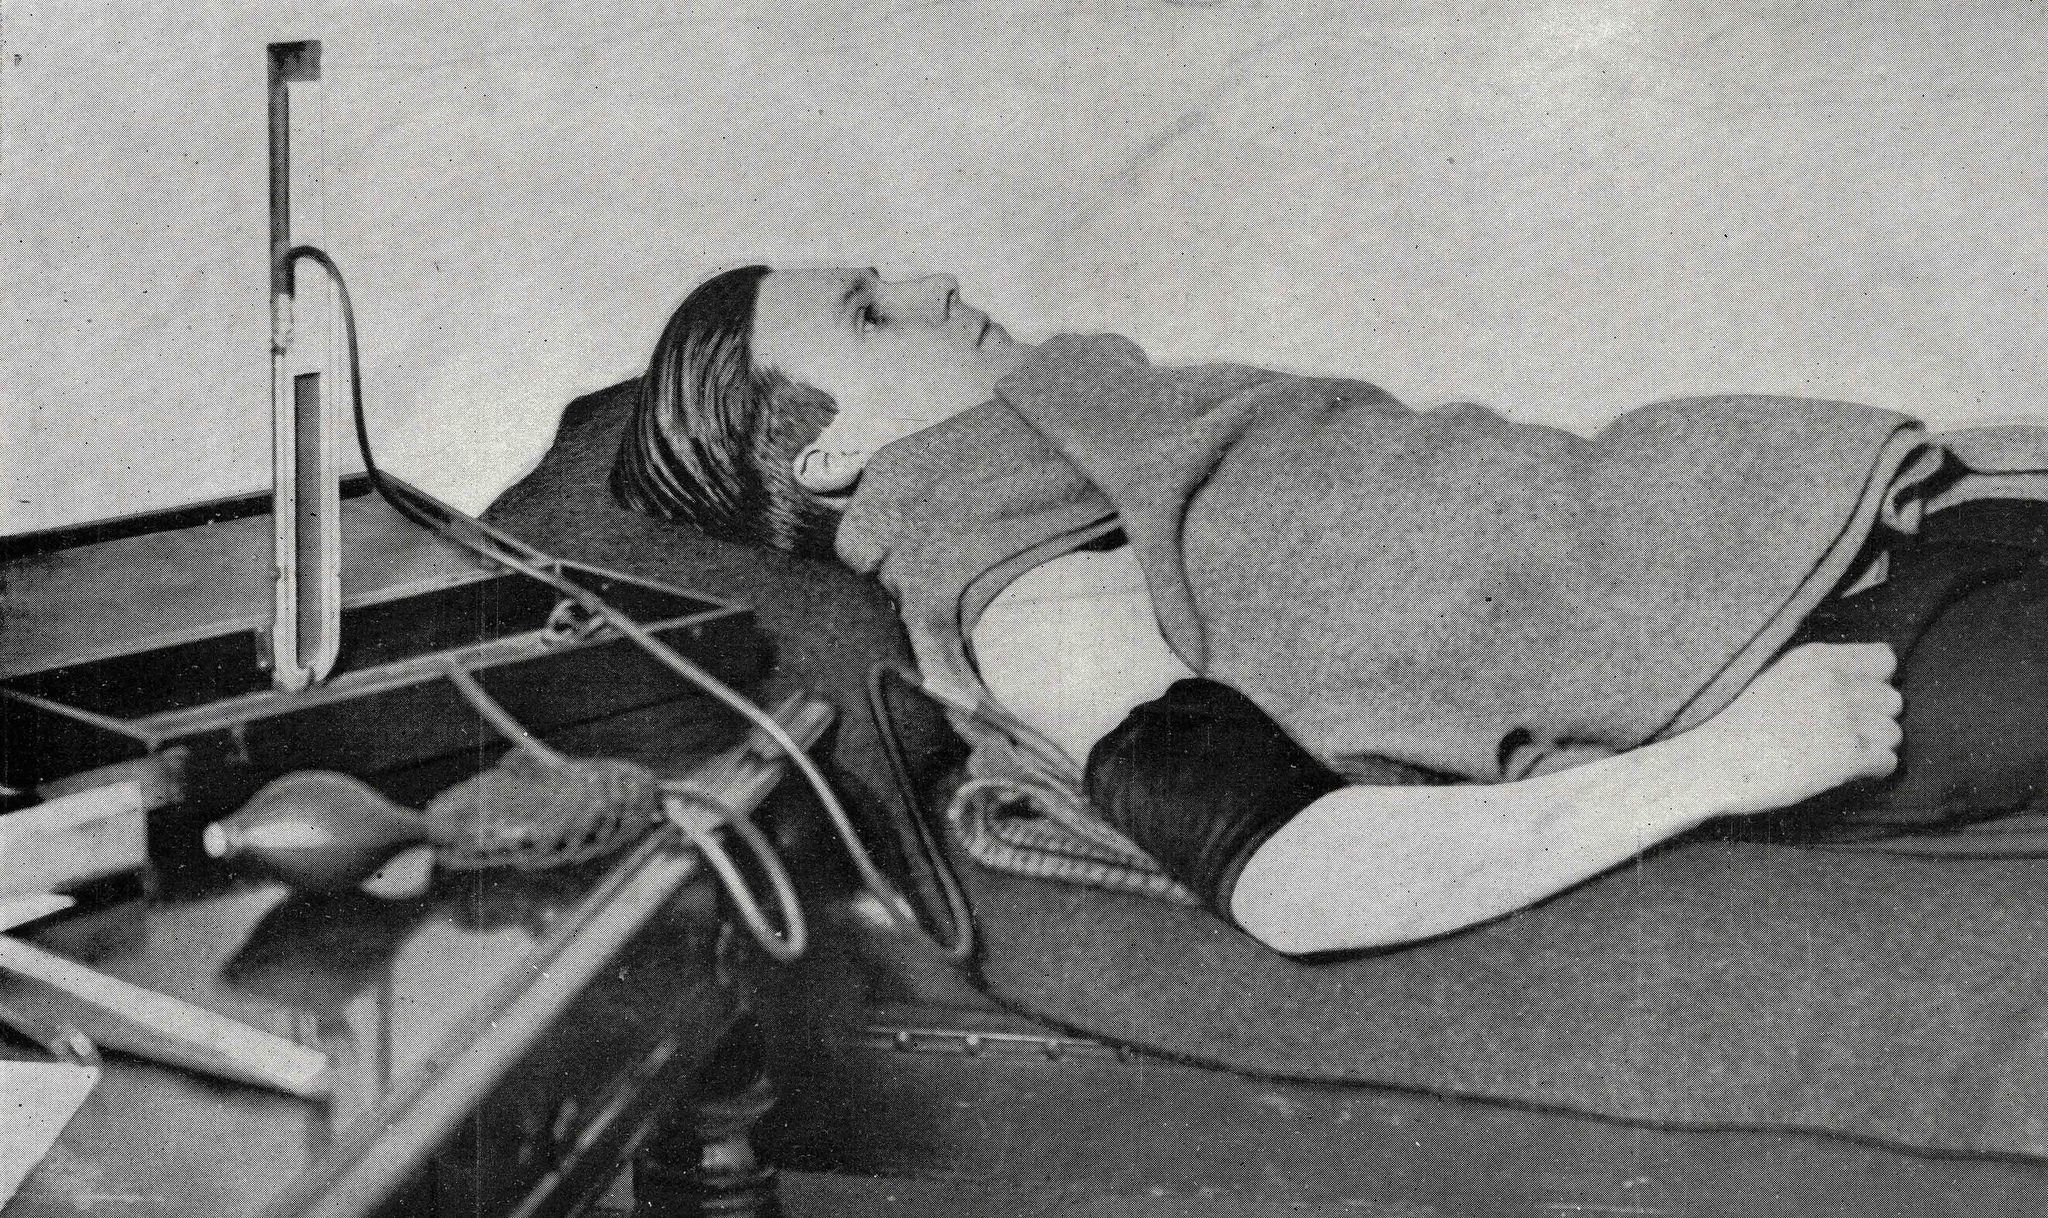 National Hospital for Diseases of the Heart  Image from the 'Illustrated War News' 1916